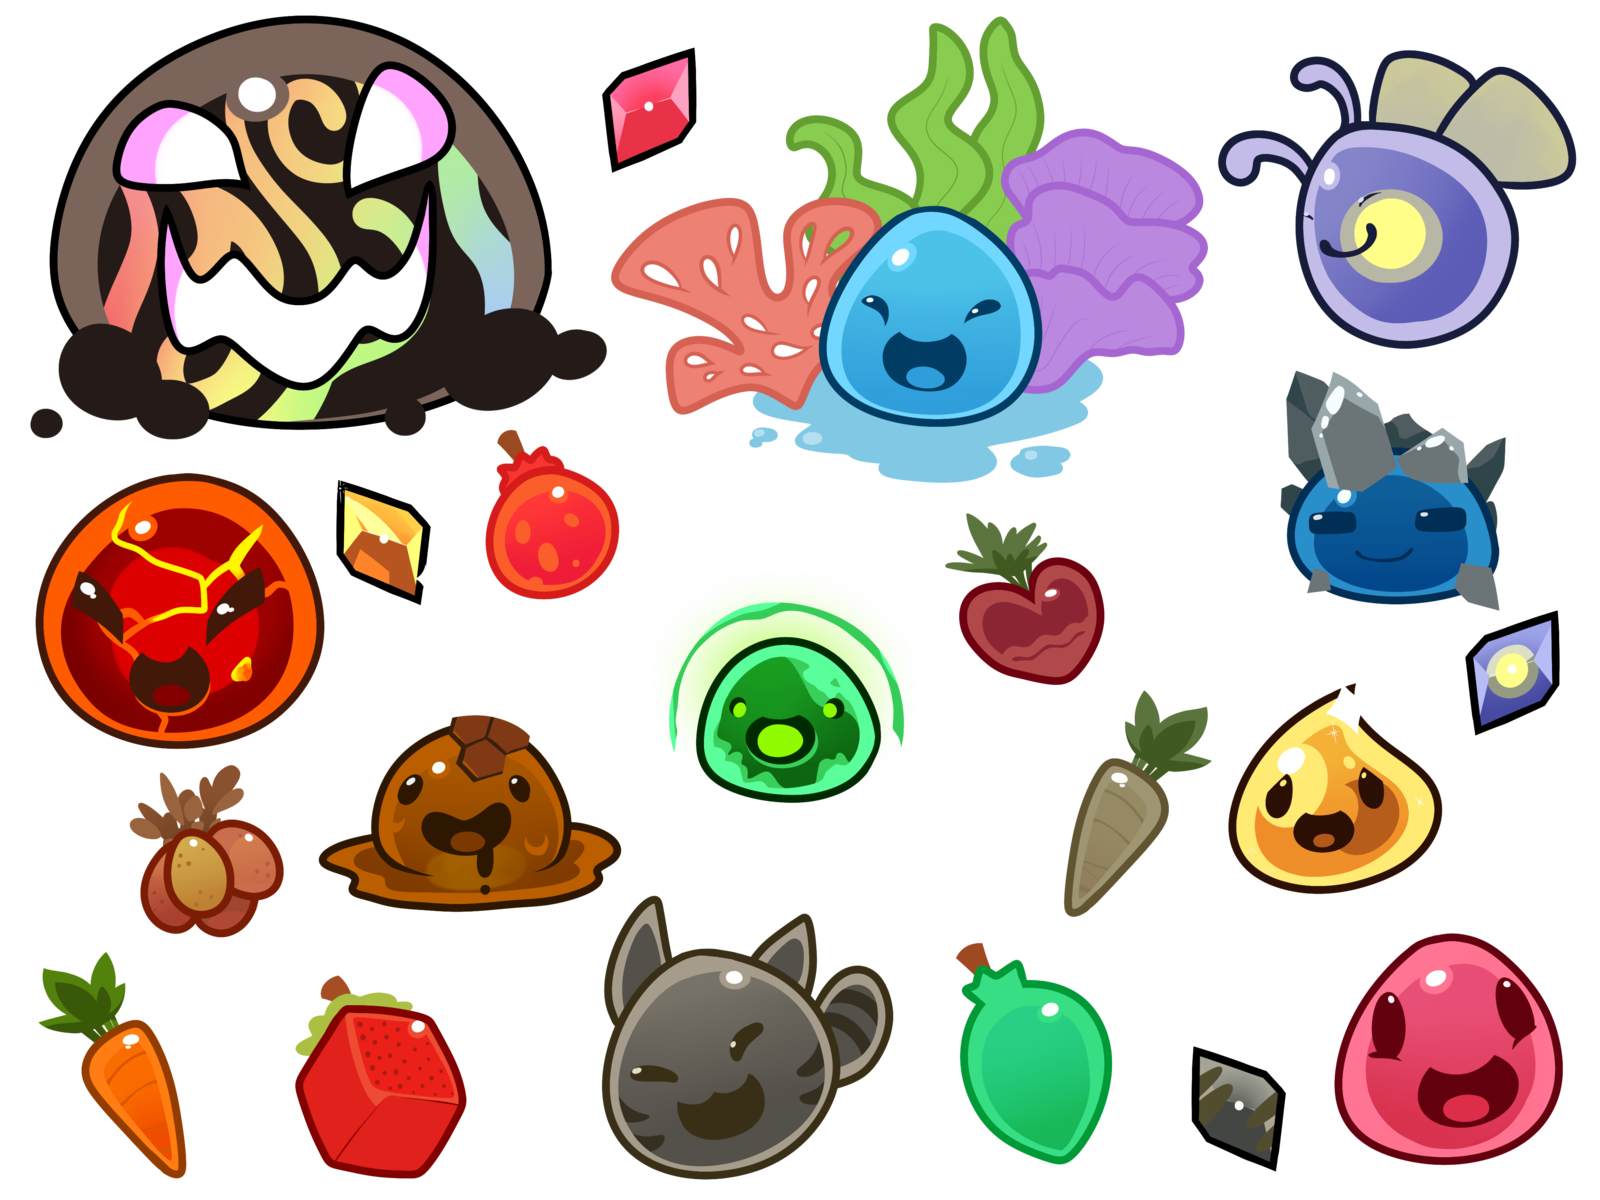 what slime do you like the best? remake